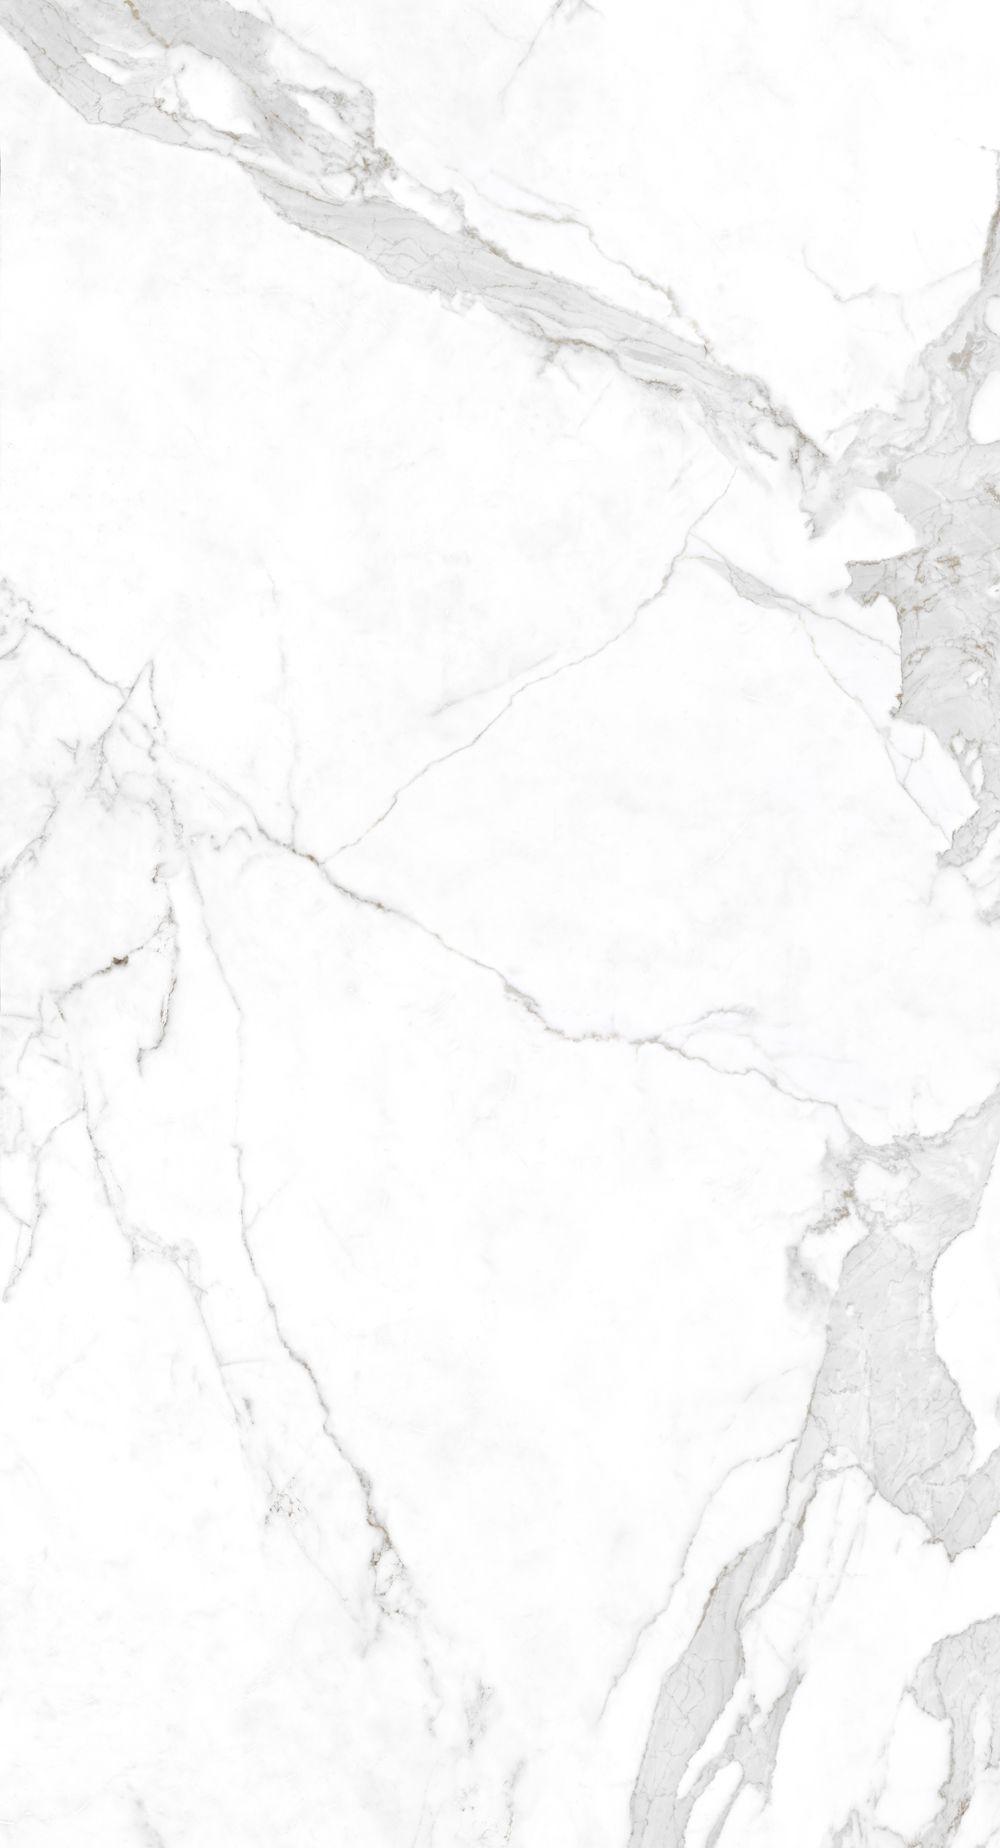 White Marble Tumblr : Neolith polished calacatta slab countertop stainproof